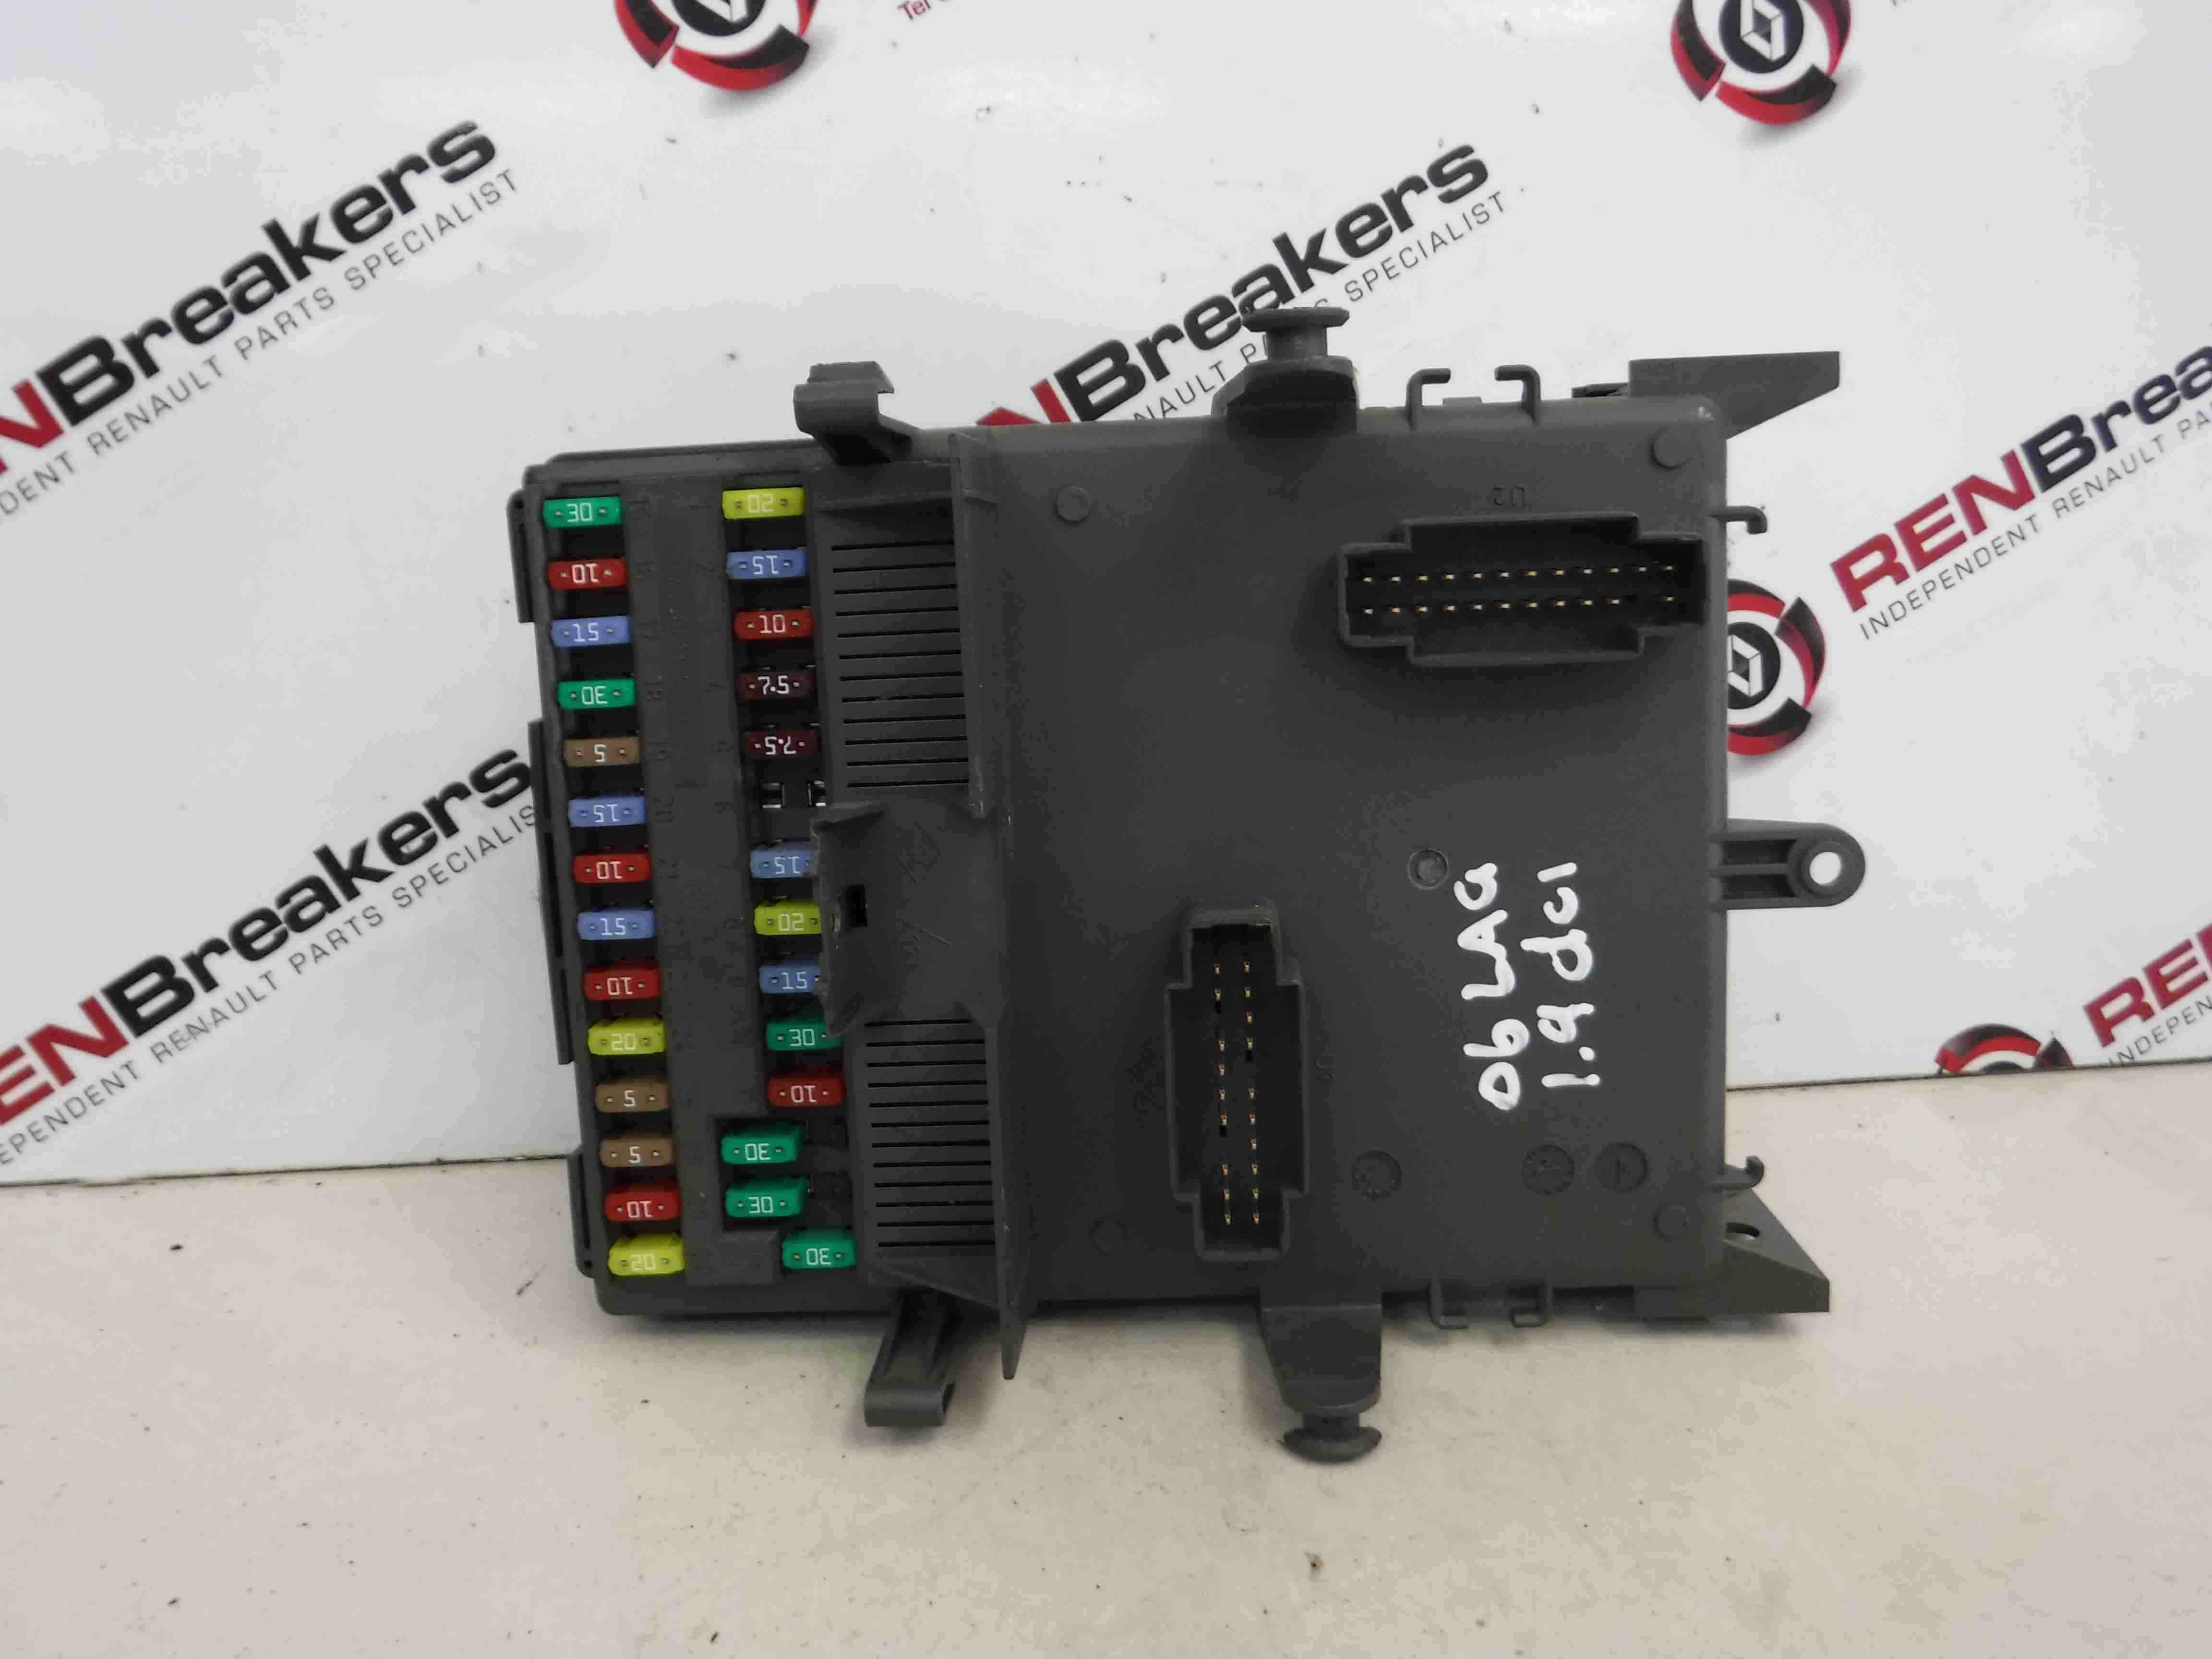 renault scenic fuse box problems d5a42 renault modus fuse box problems wiring resources  d5a42 renault modus fuse box problems